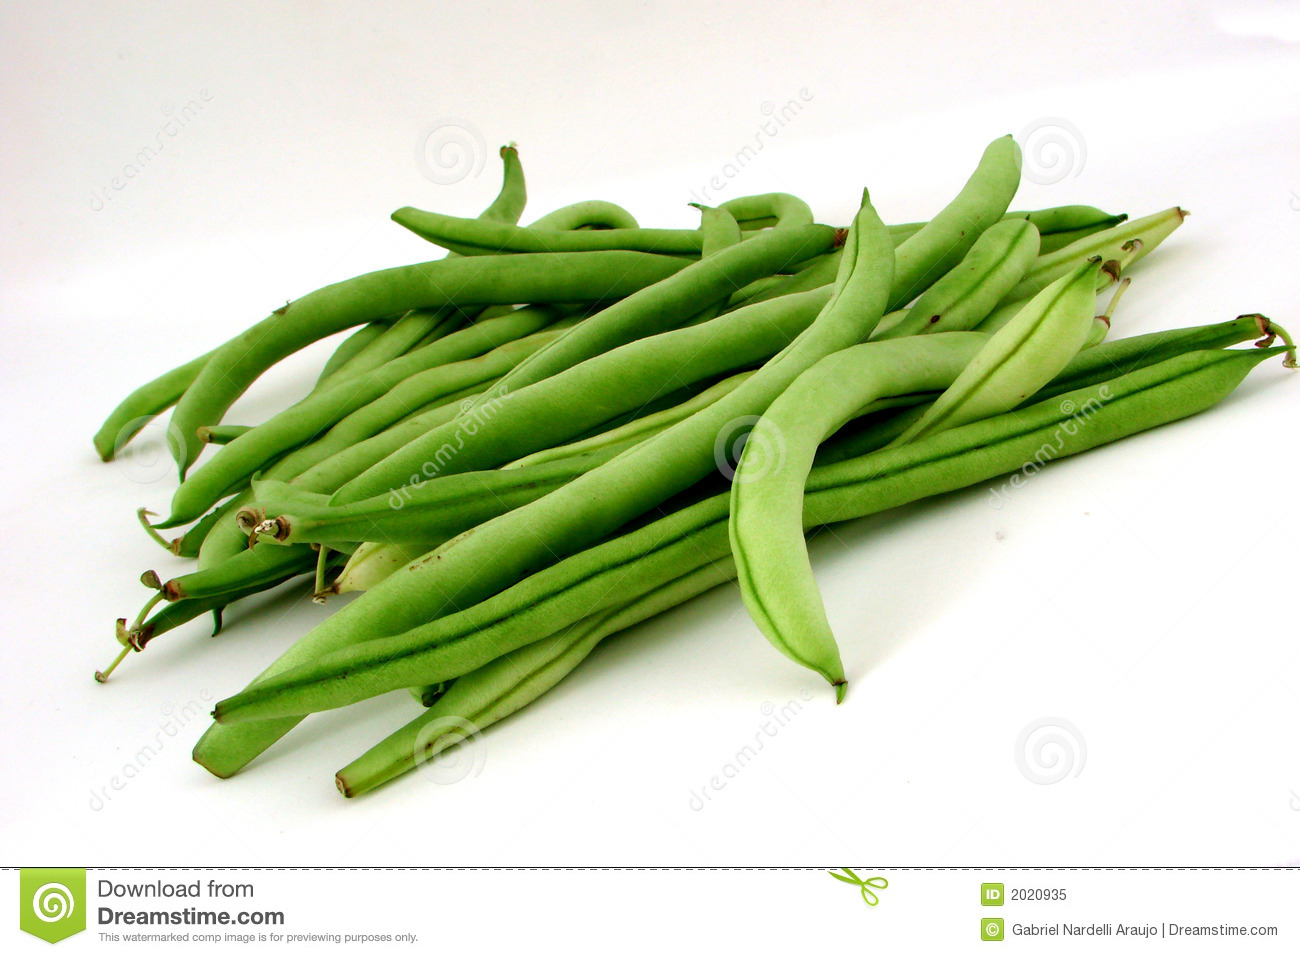 how to clean string beans